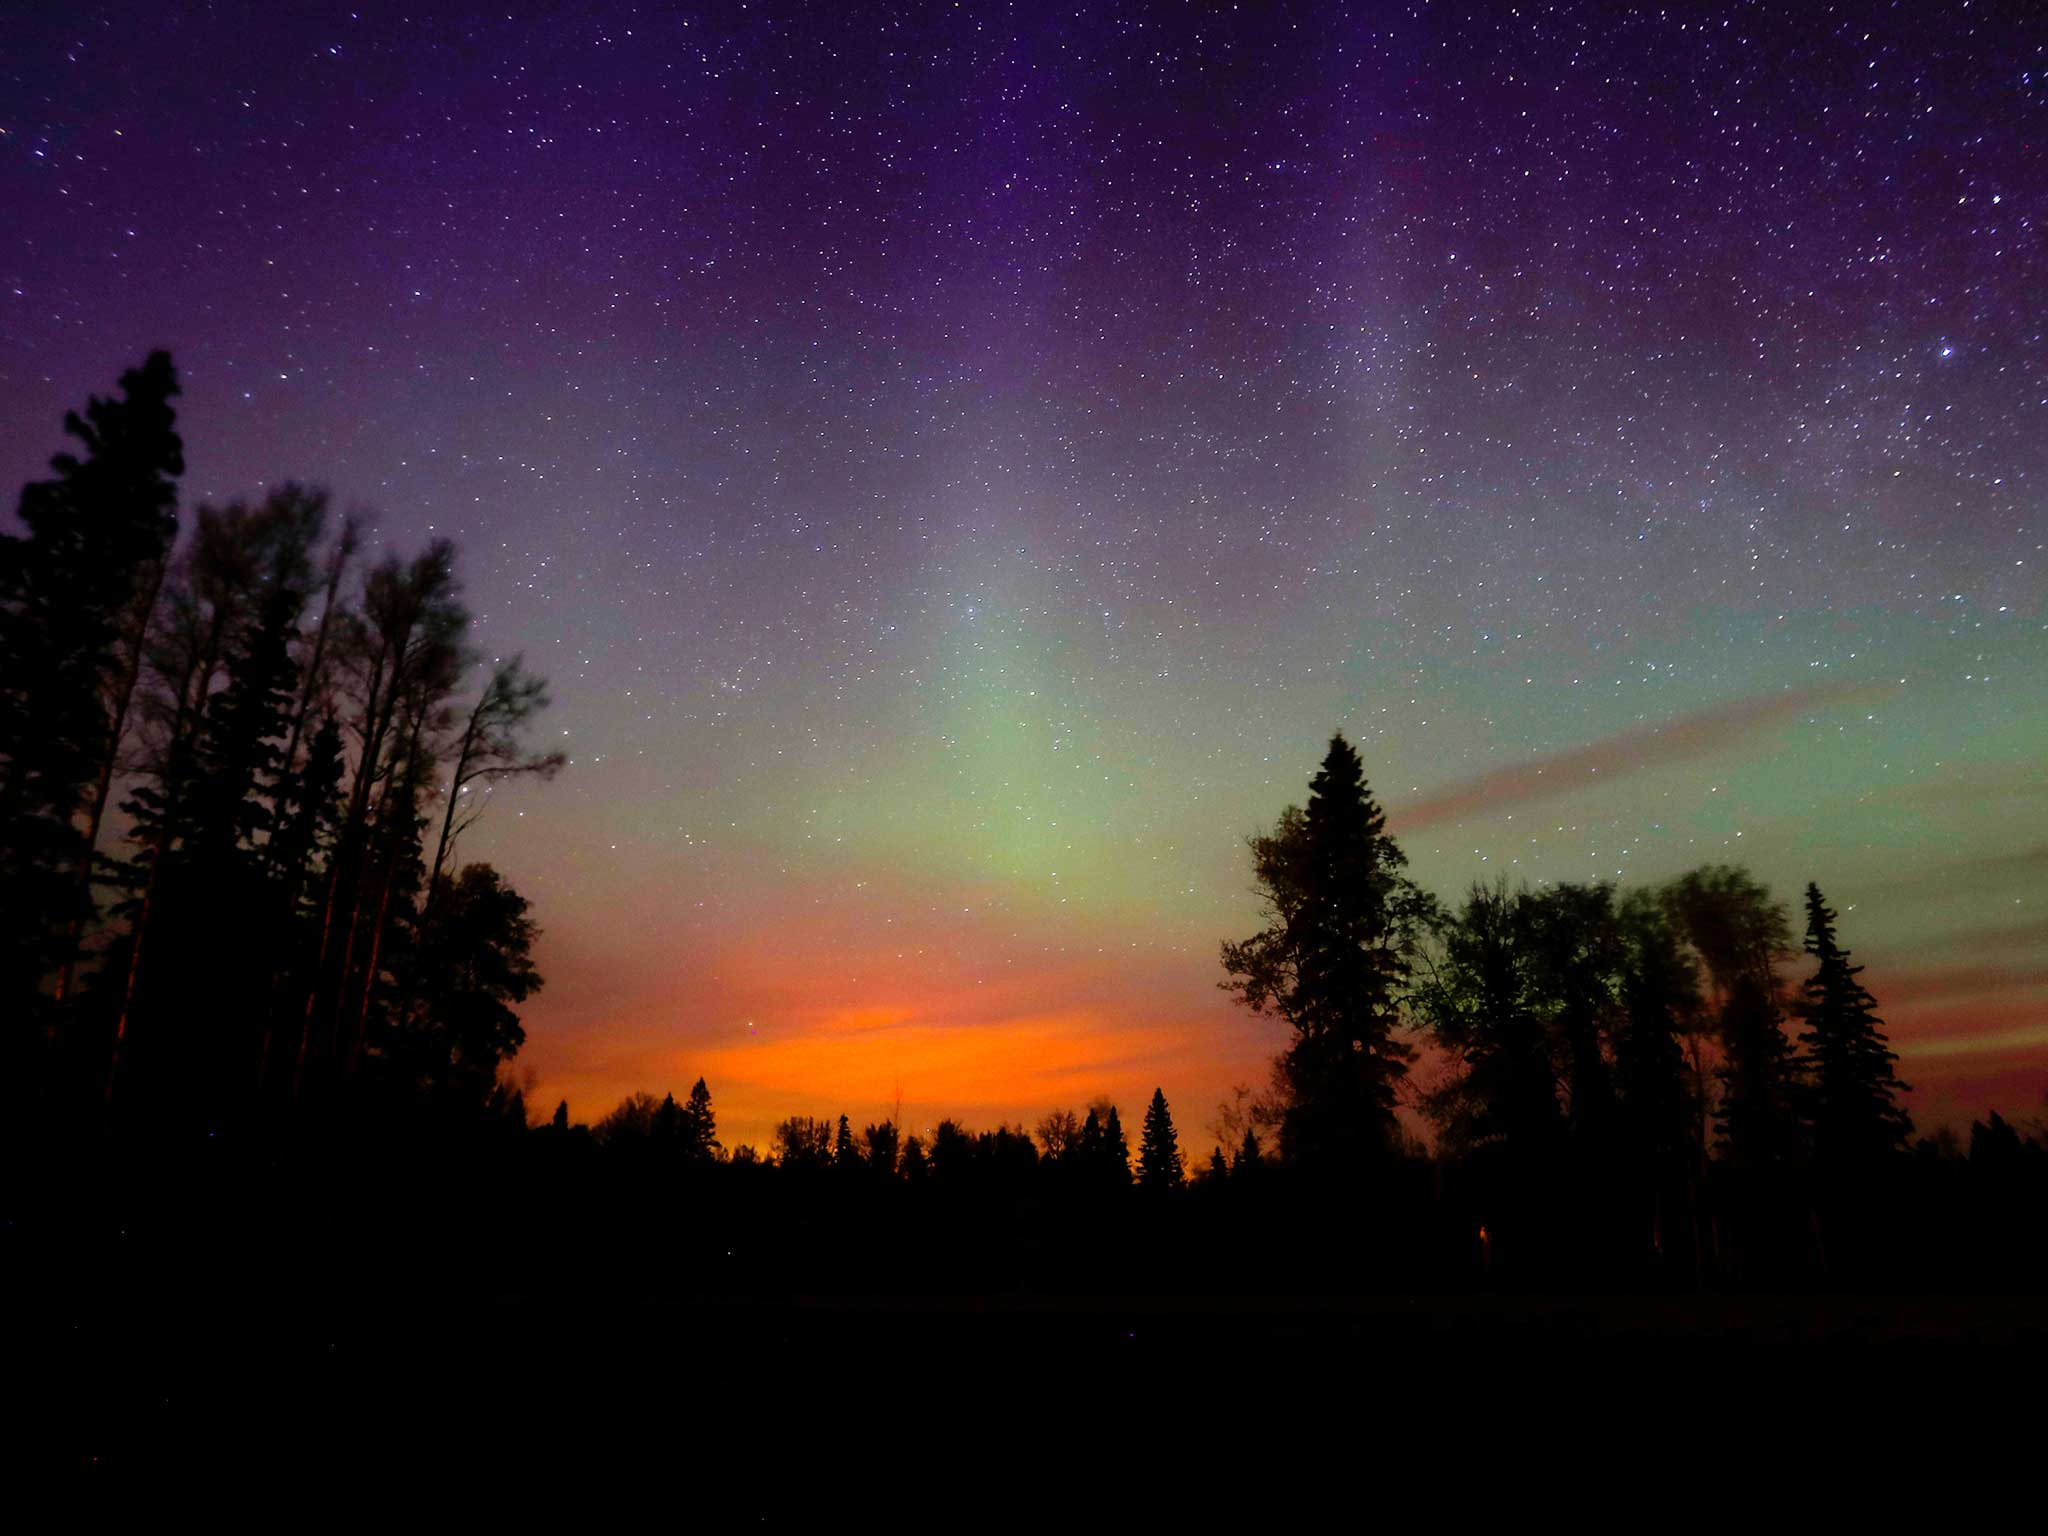 The wildfires glow underneath The Northern Lights ...